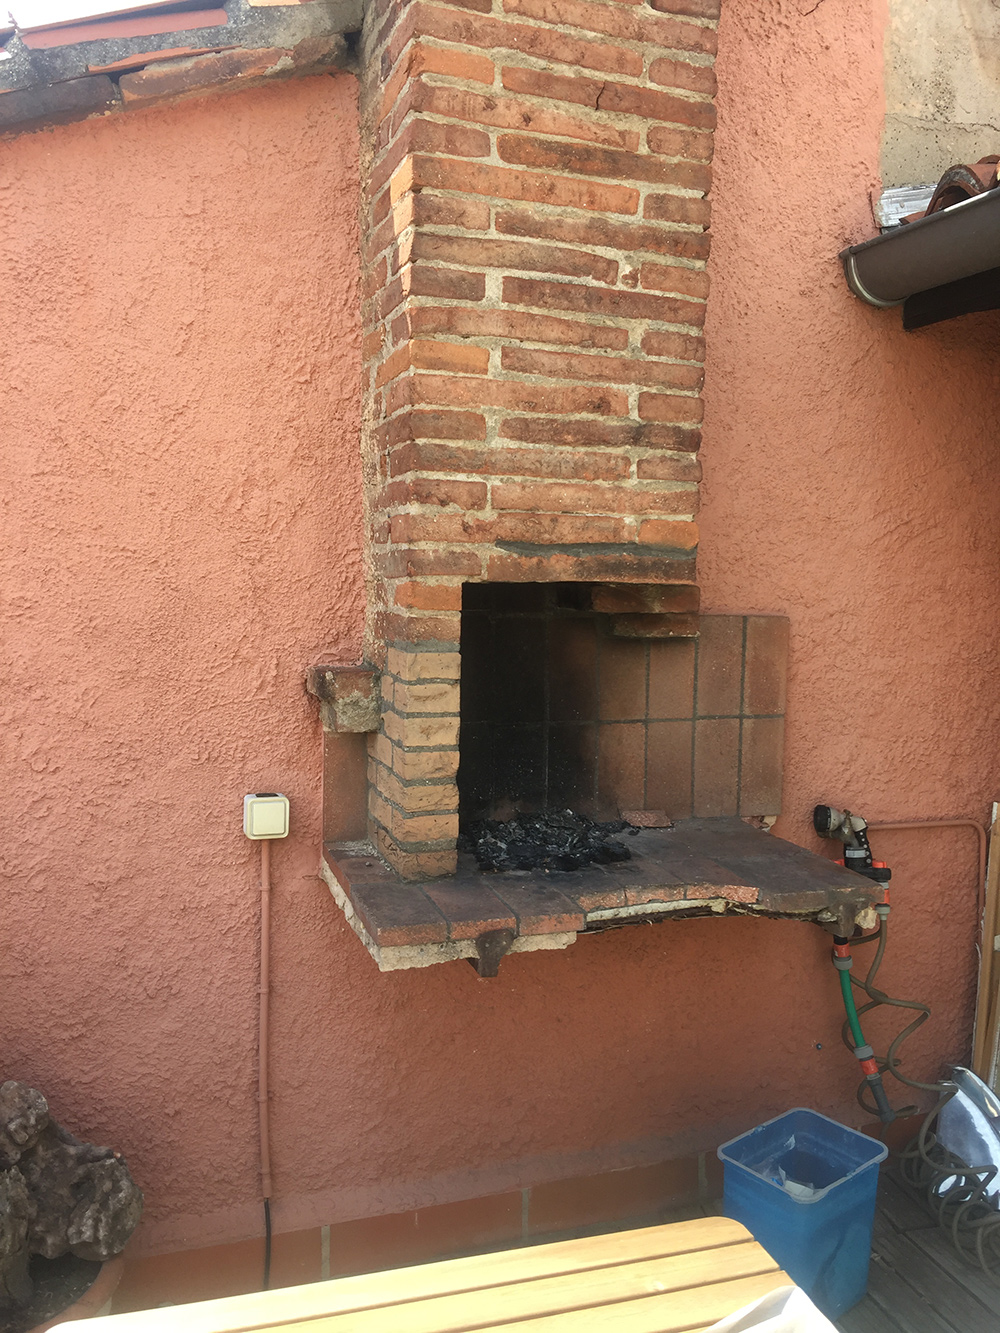 Rénovation d'un barbecue - Avant travaux